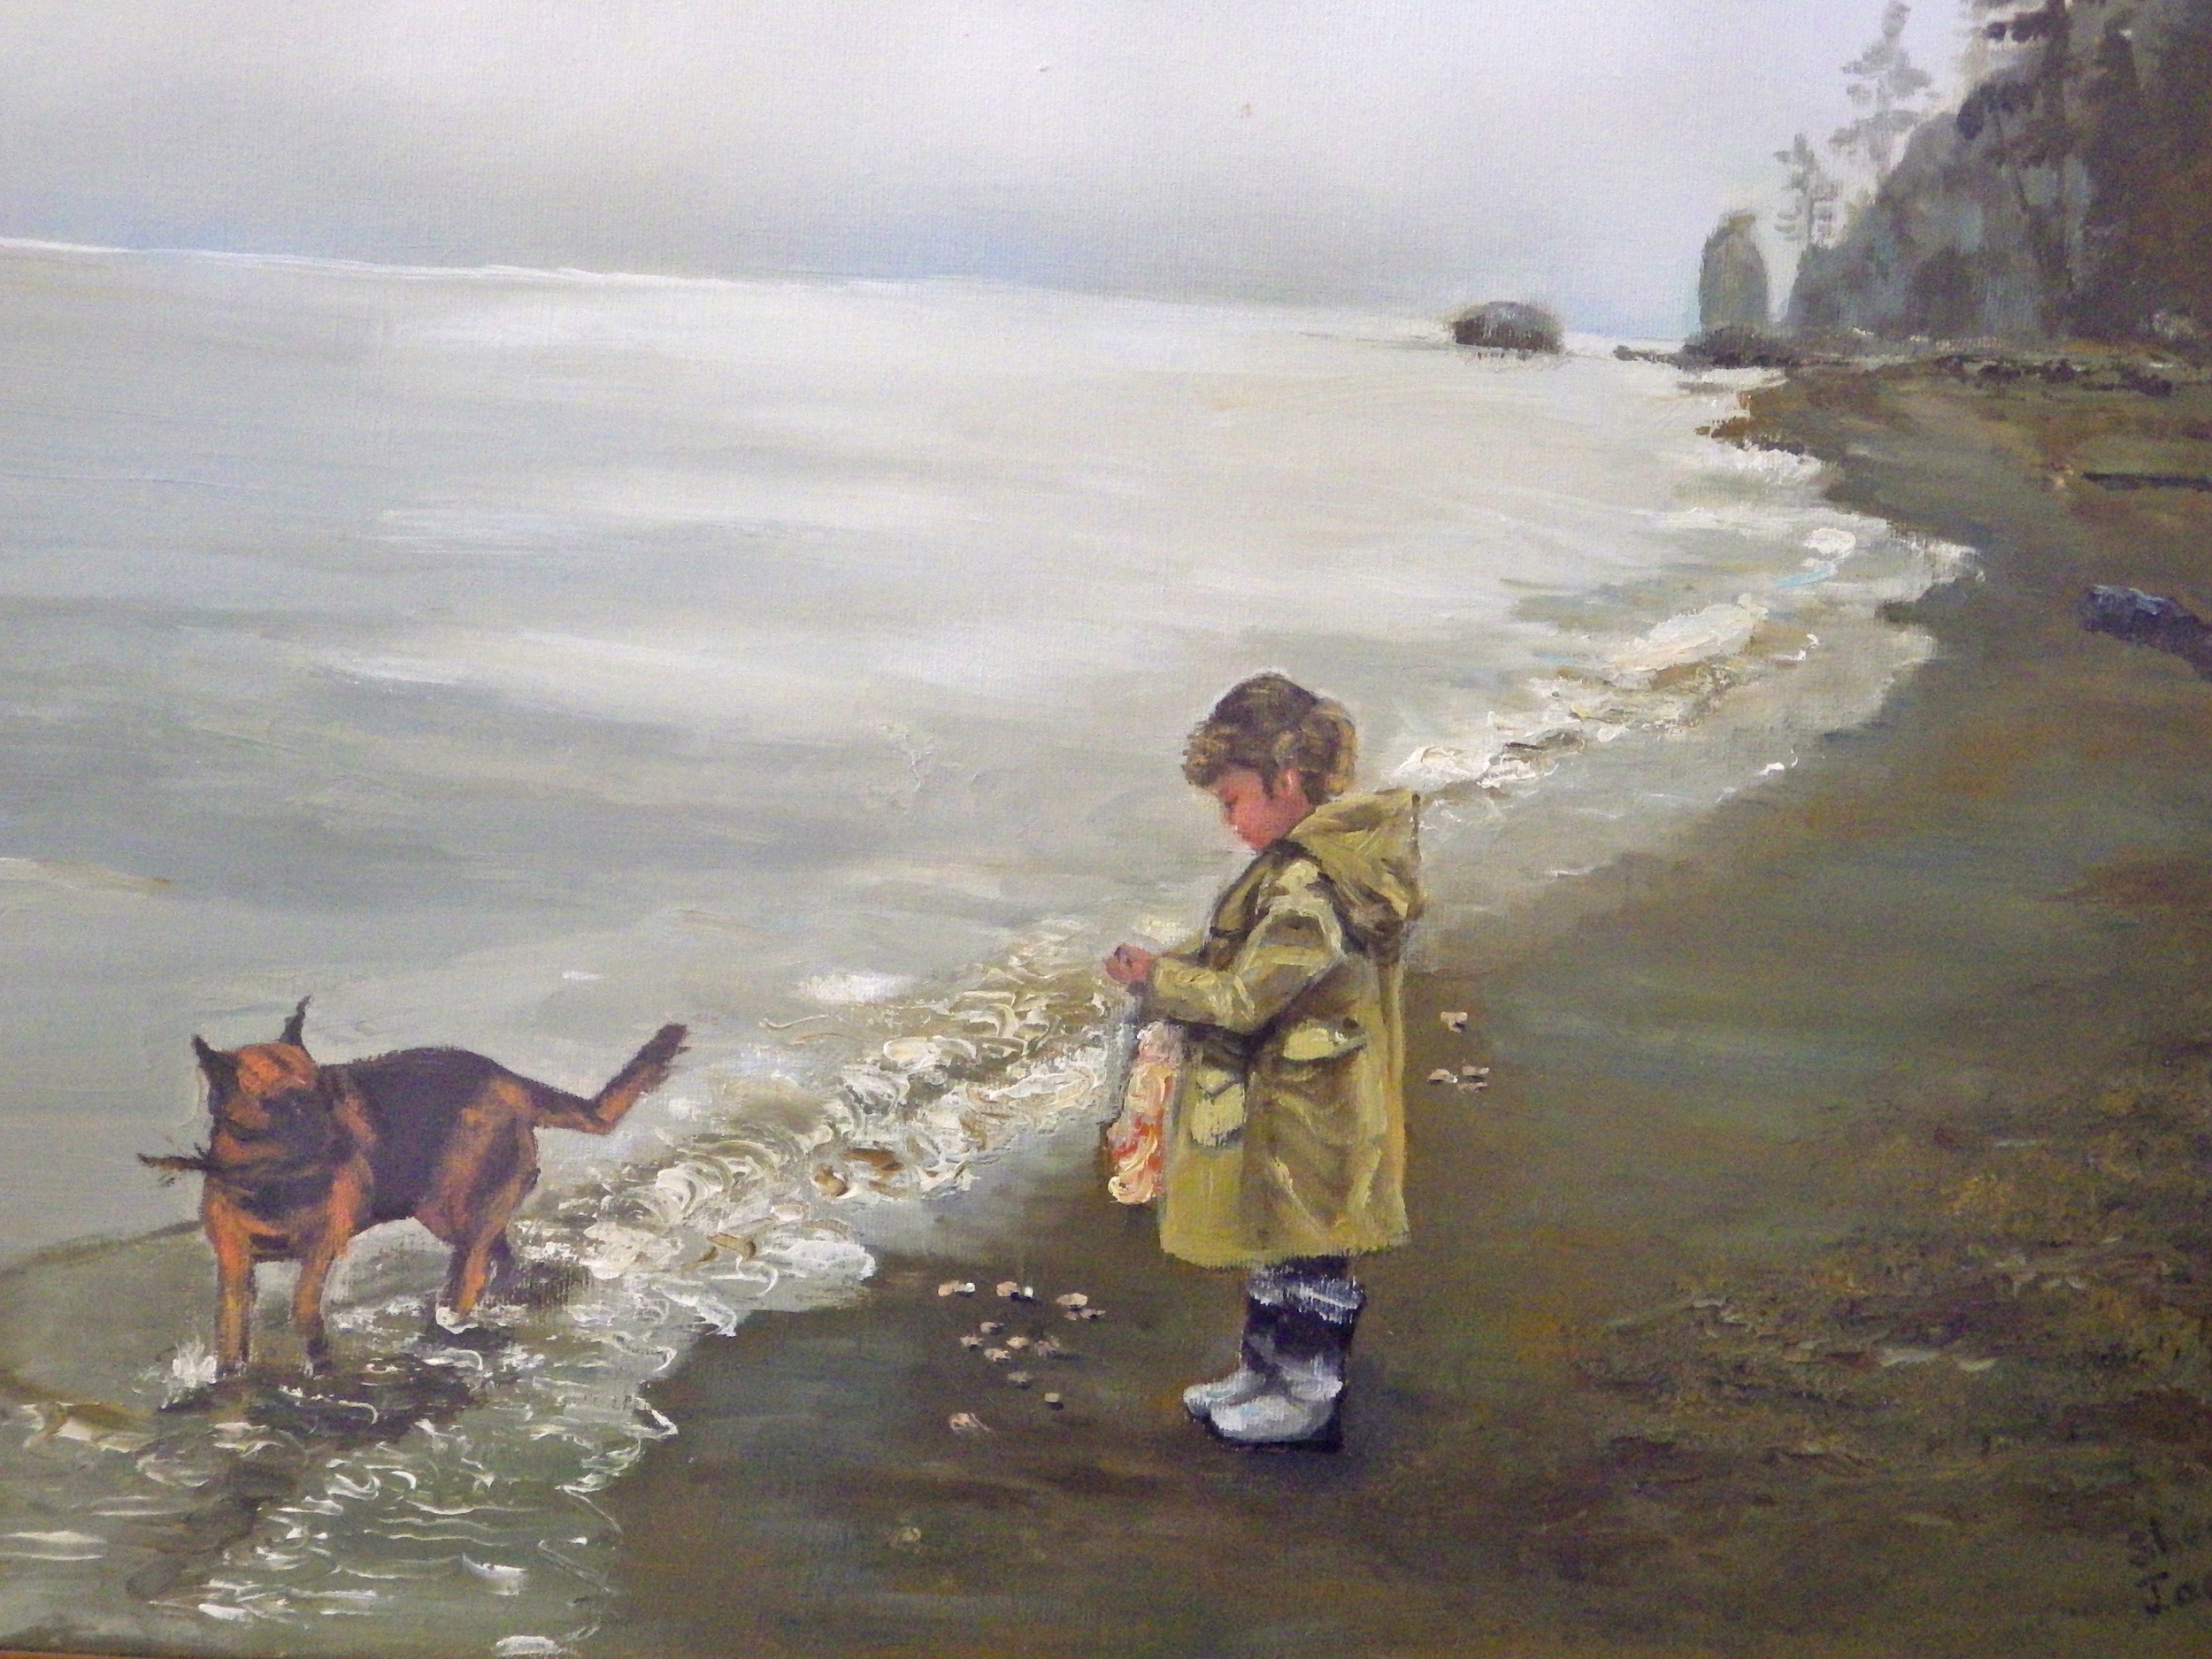 Moon Boots - Private Collection